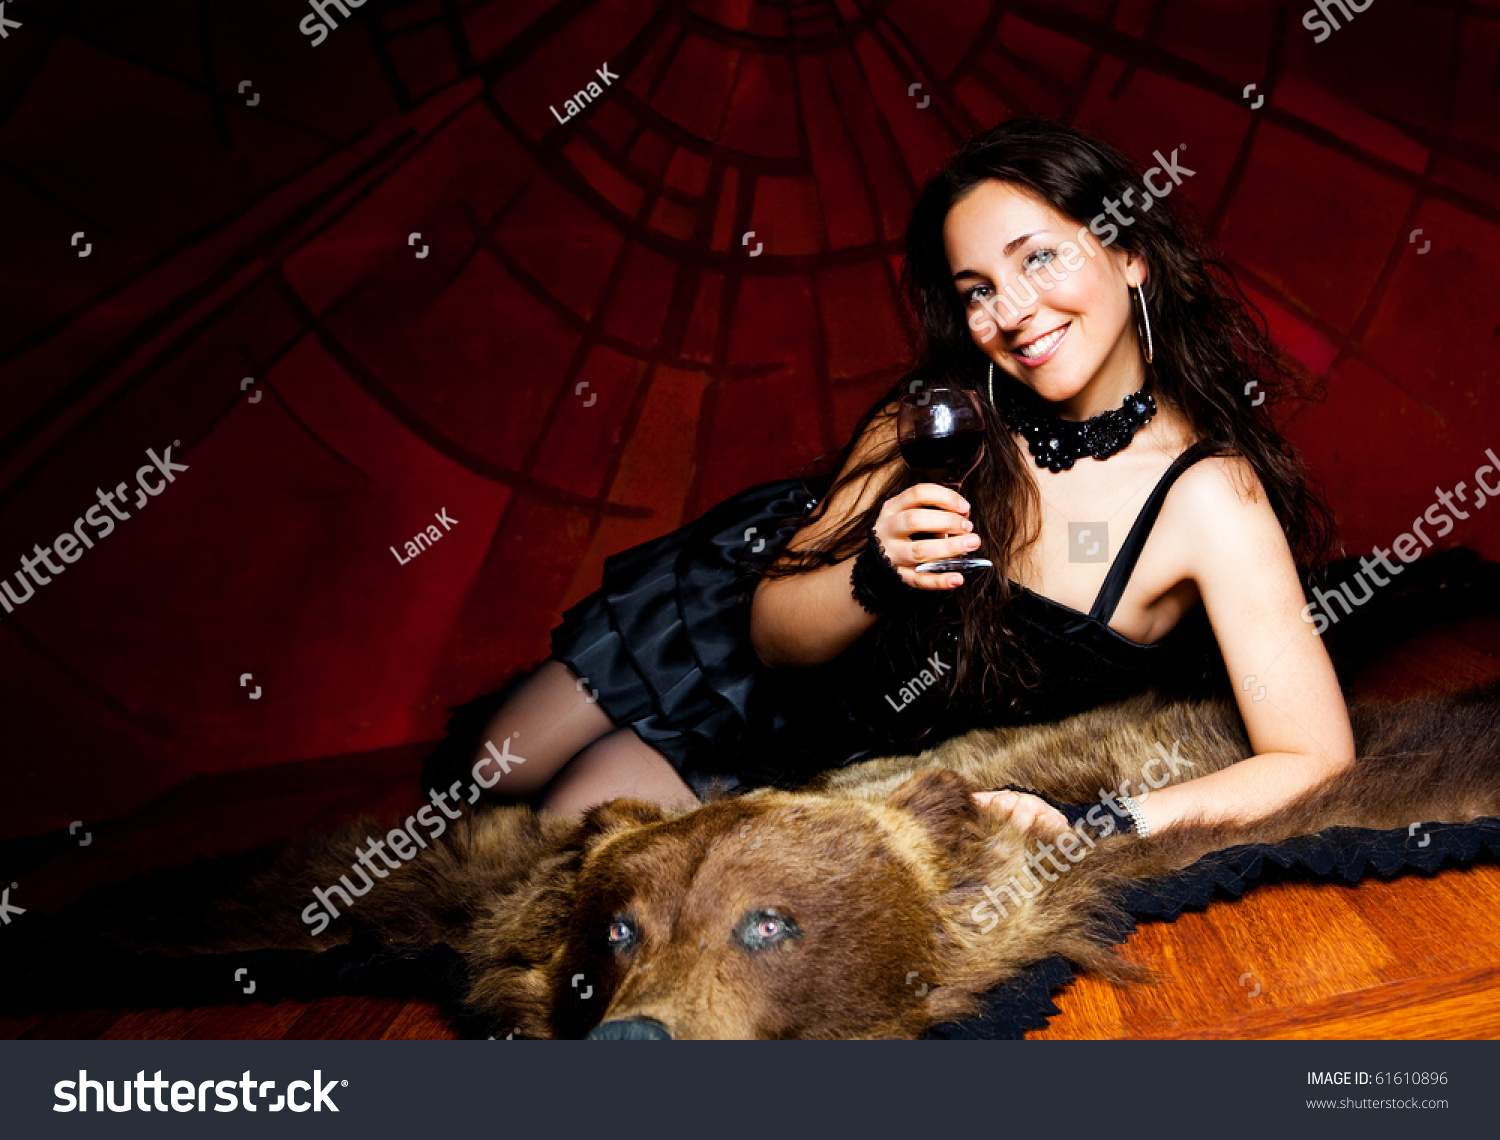 A naked woman on bear skin rug